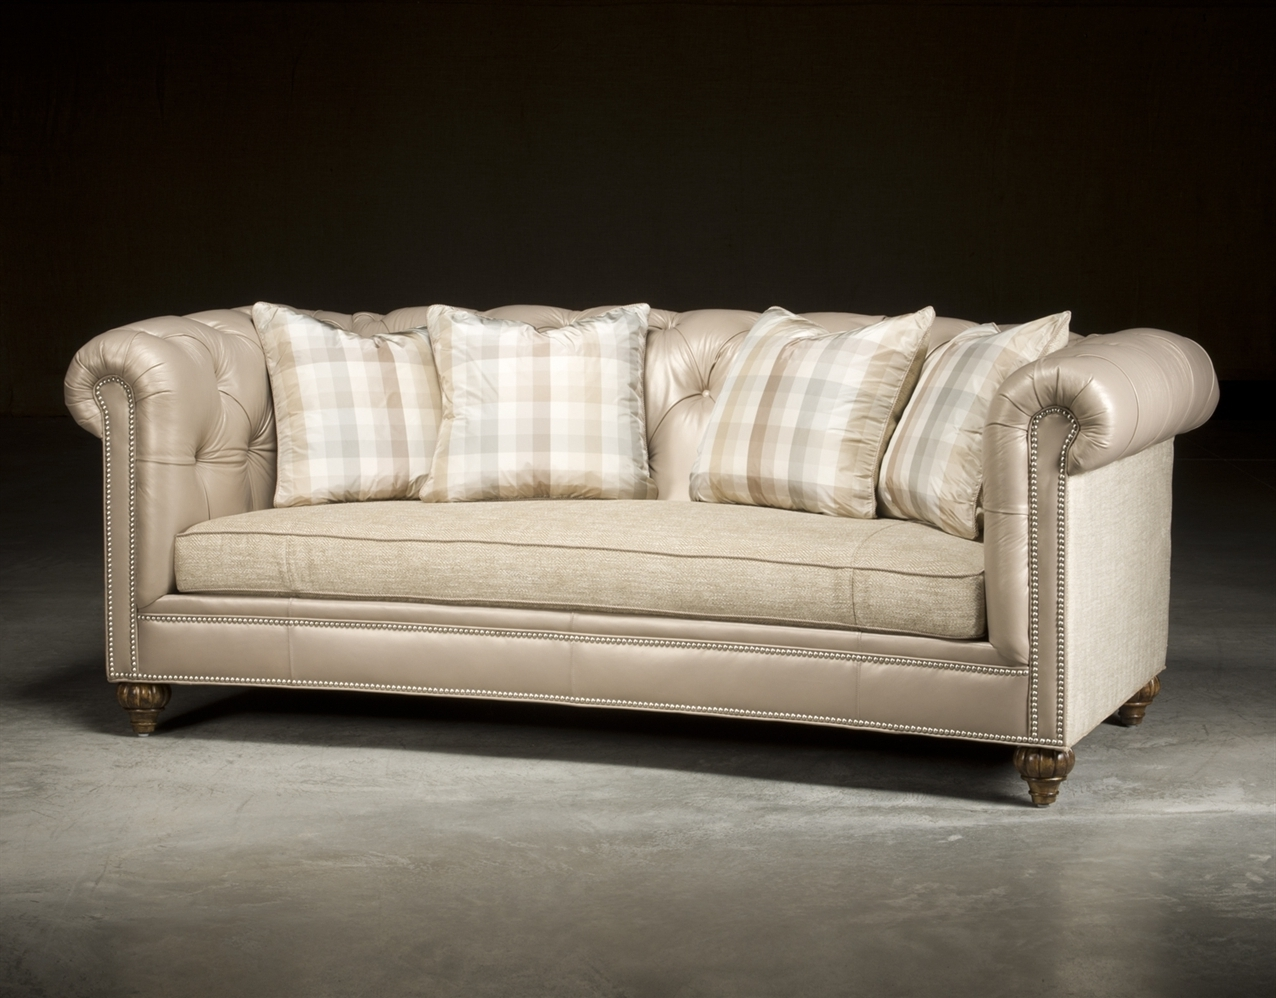 High End Sofas Throughout Latest High End Designer Sofas (View 7 of 20)